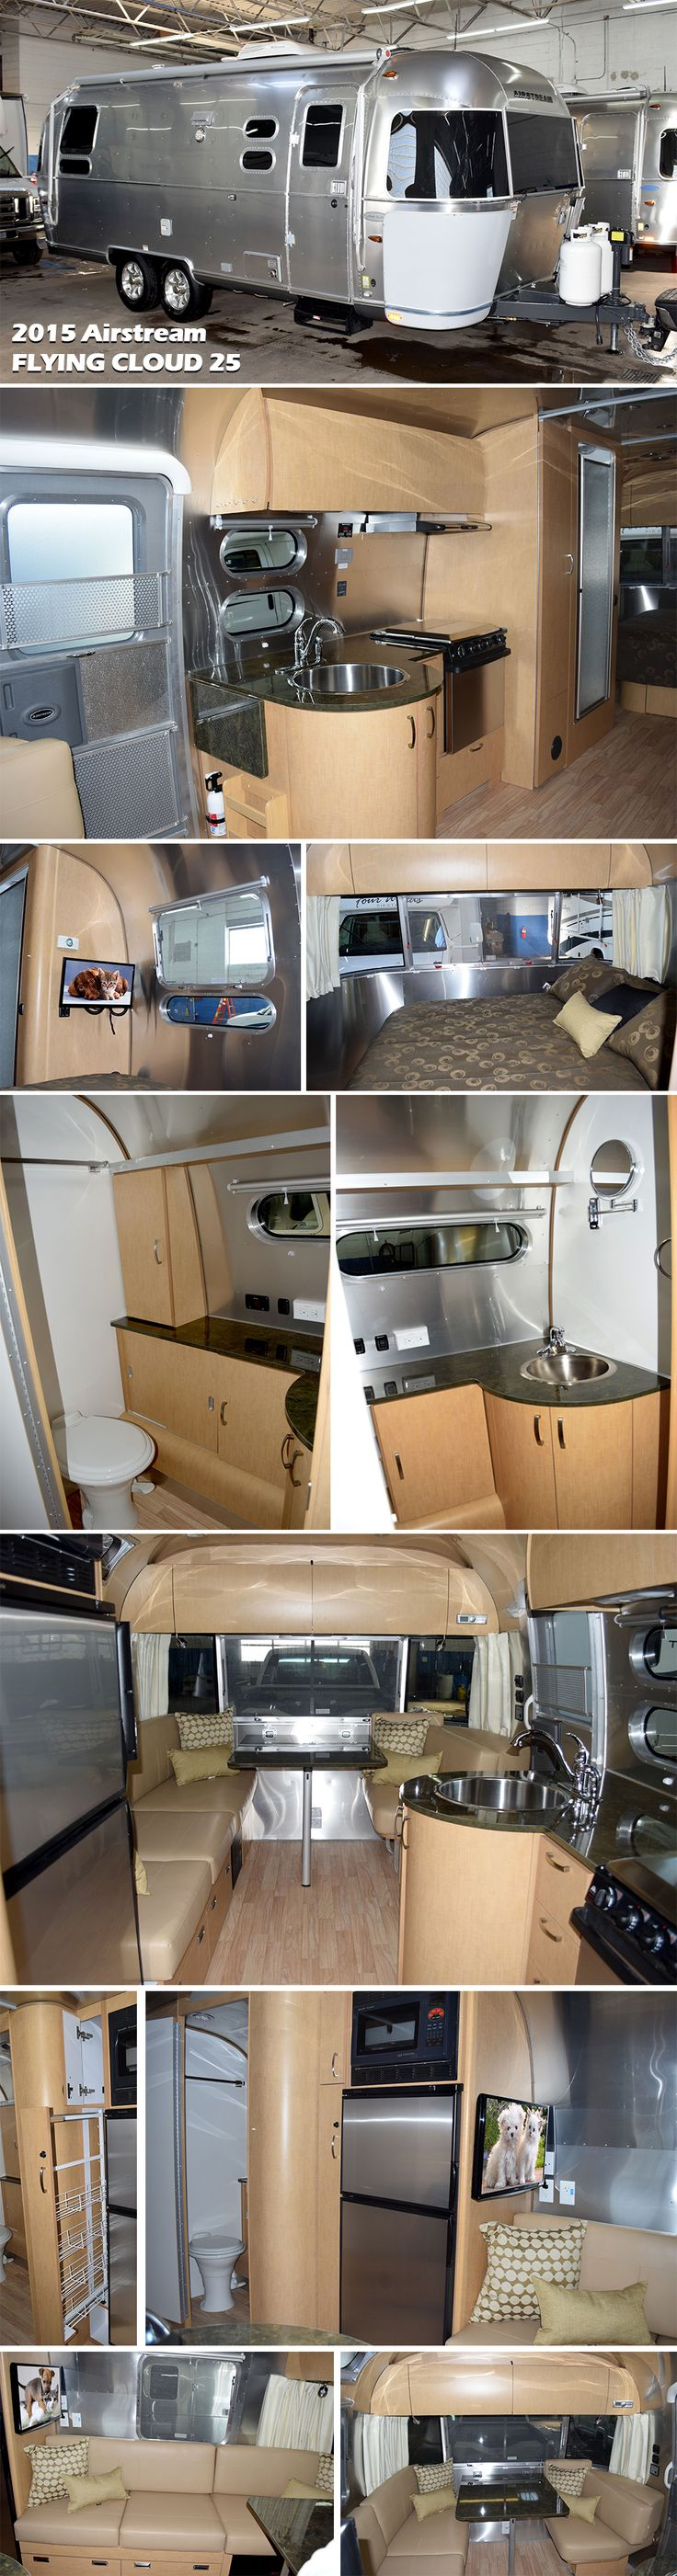 2015 AIRSTREAM FLYING CLOUD 25. This practical, efficient trailer is designed to move effortlessly from place to place, keeping you cushioned in comfort with advanced storage solutions and an abundance of floor plans that work beautifully for families, long-term travelers, or weekend wanderers.